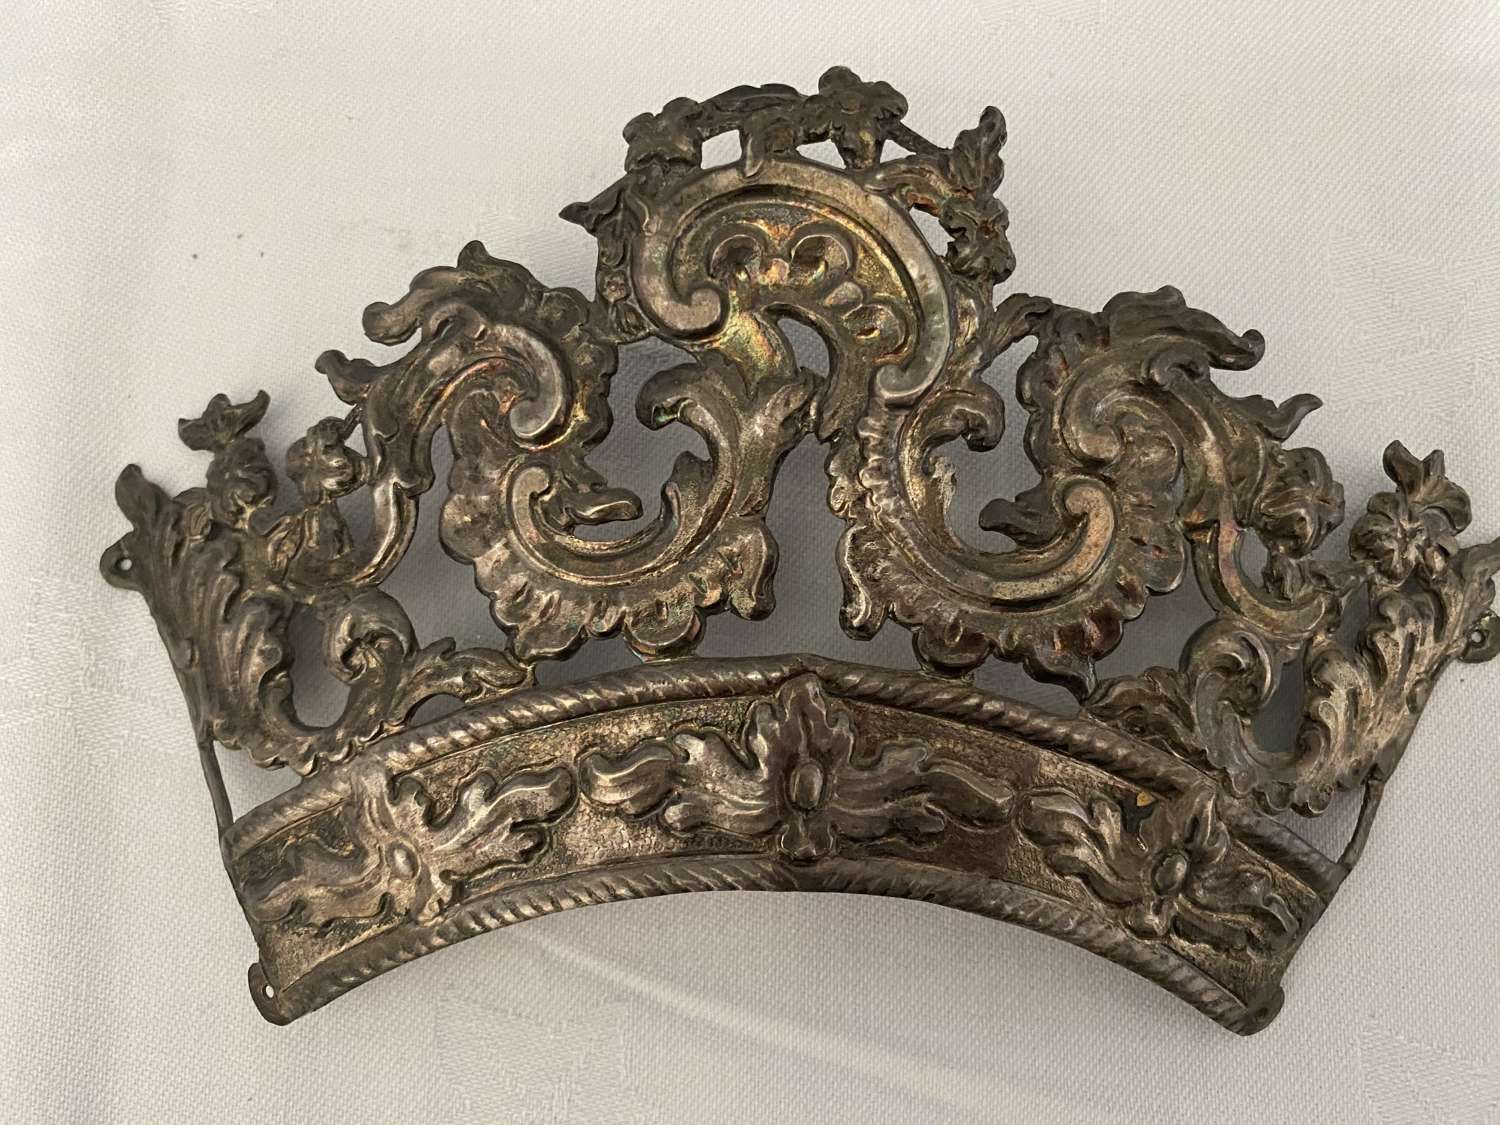 A continental white metal pressed crown